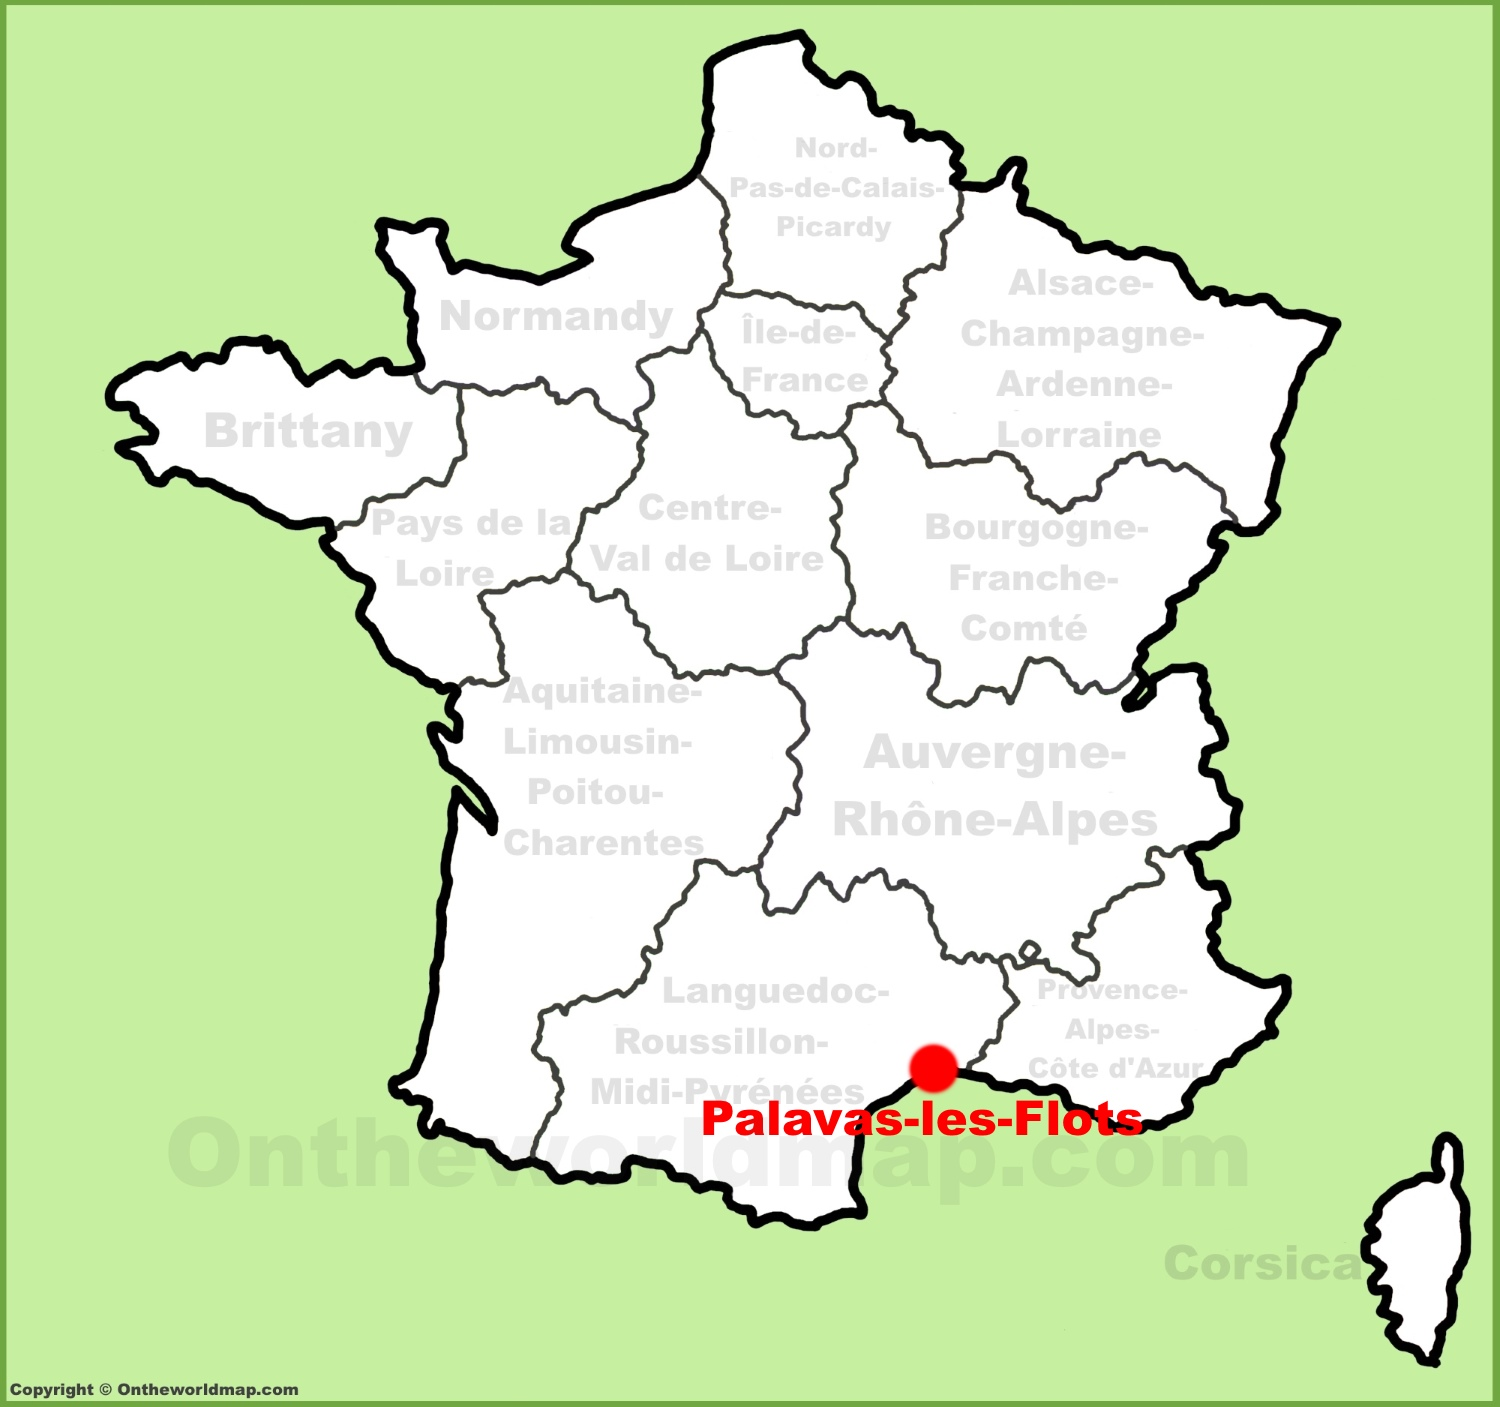 PalavaslesFlots location on the France map